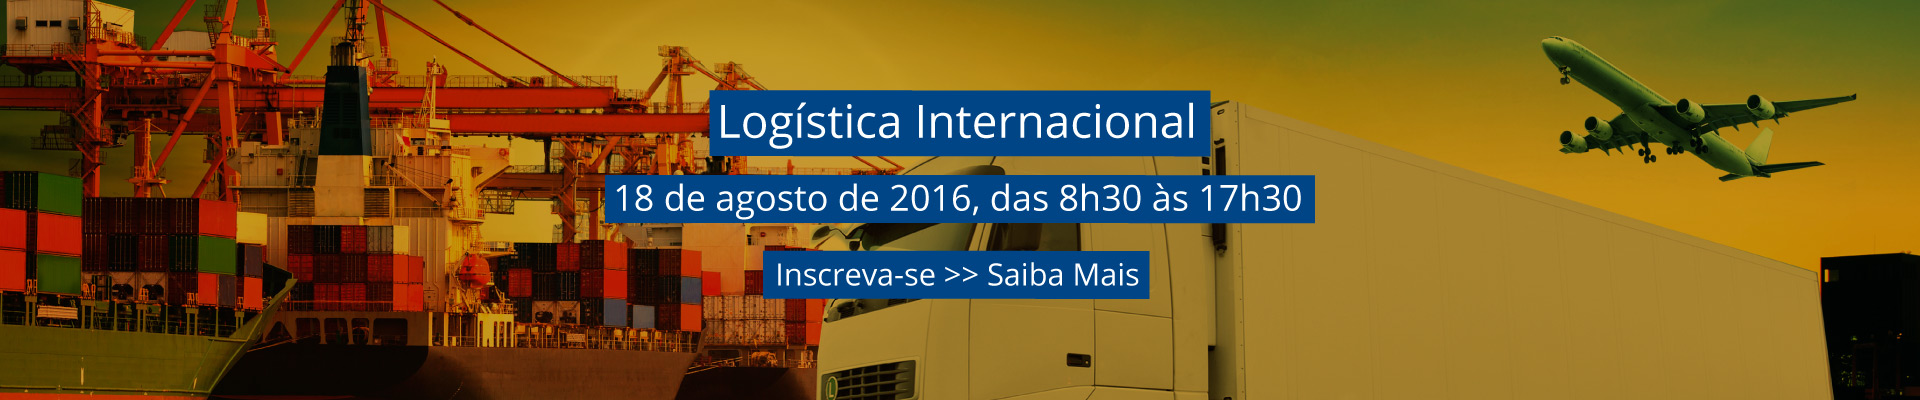 banner-site-logistica-internacional1